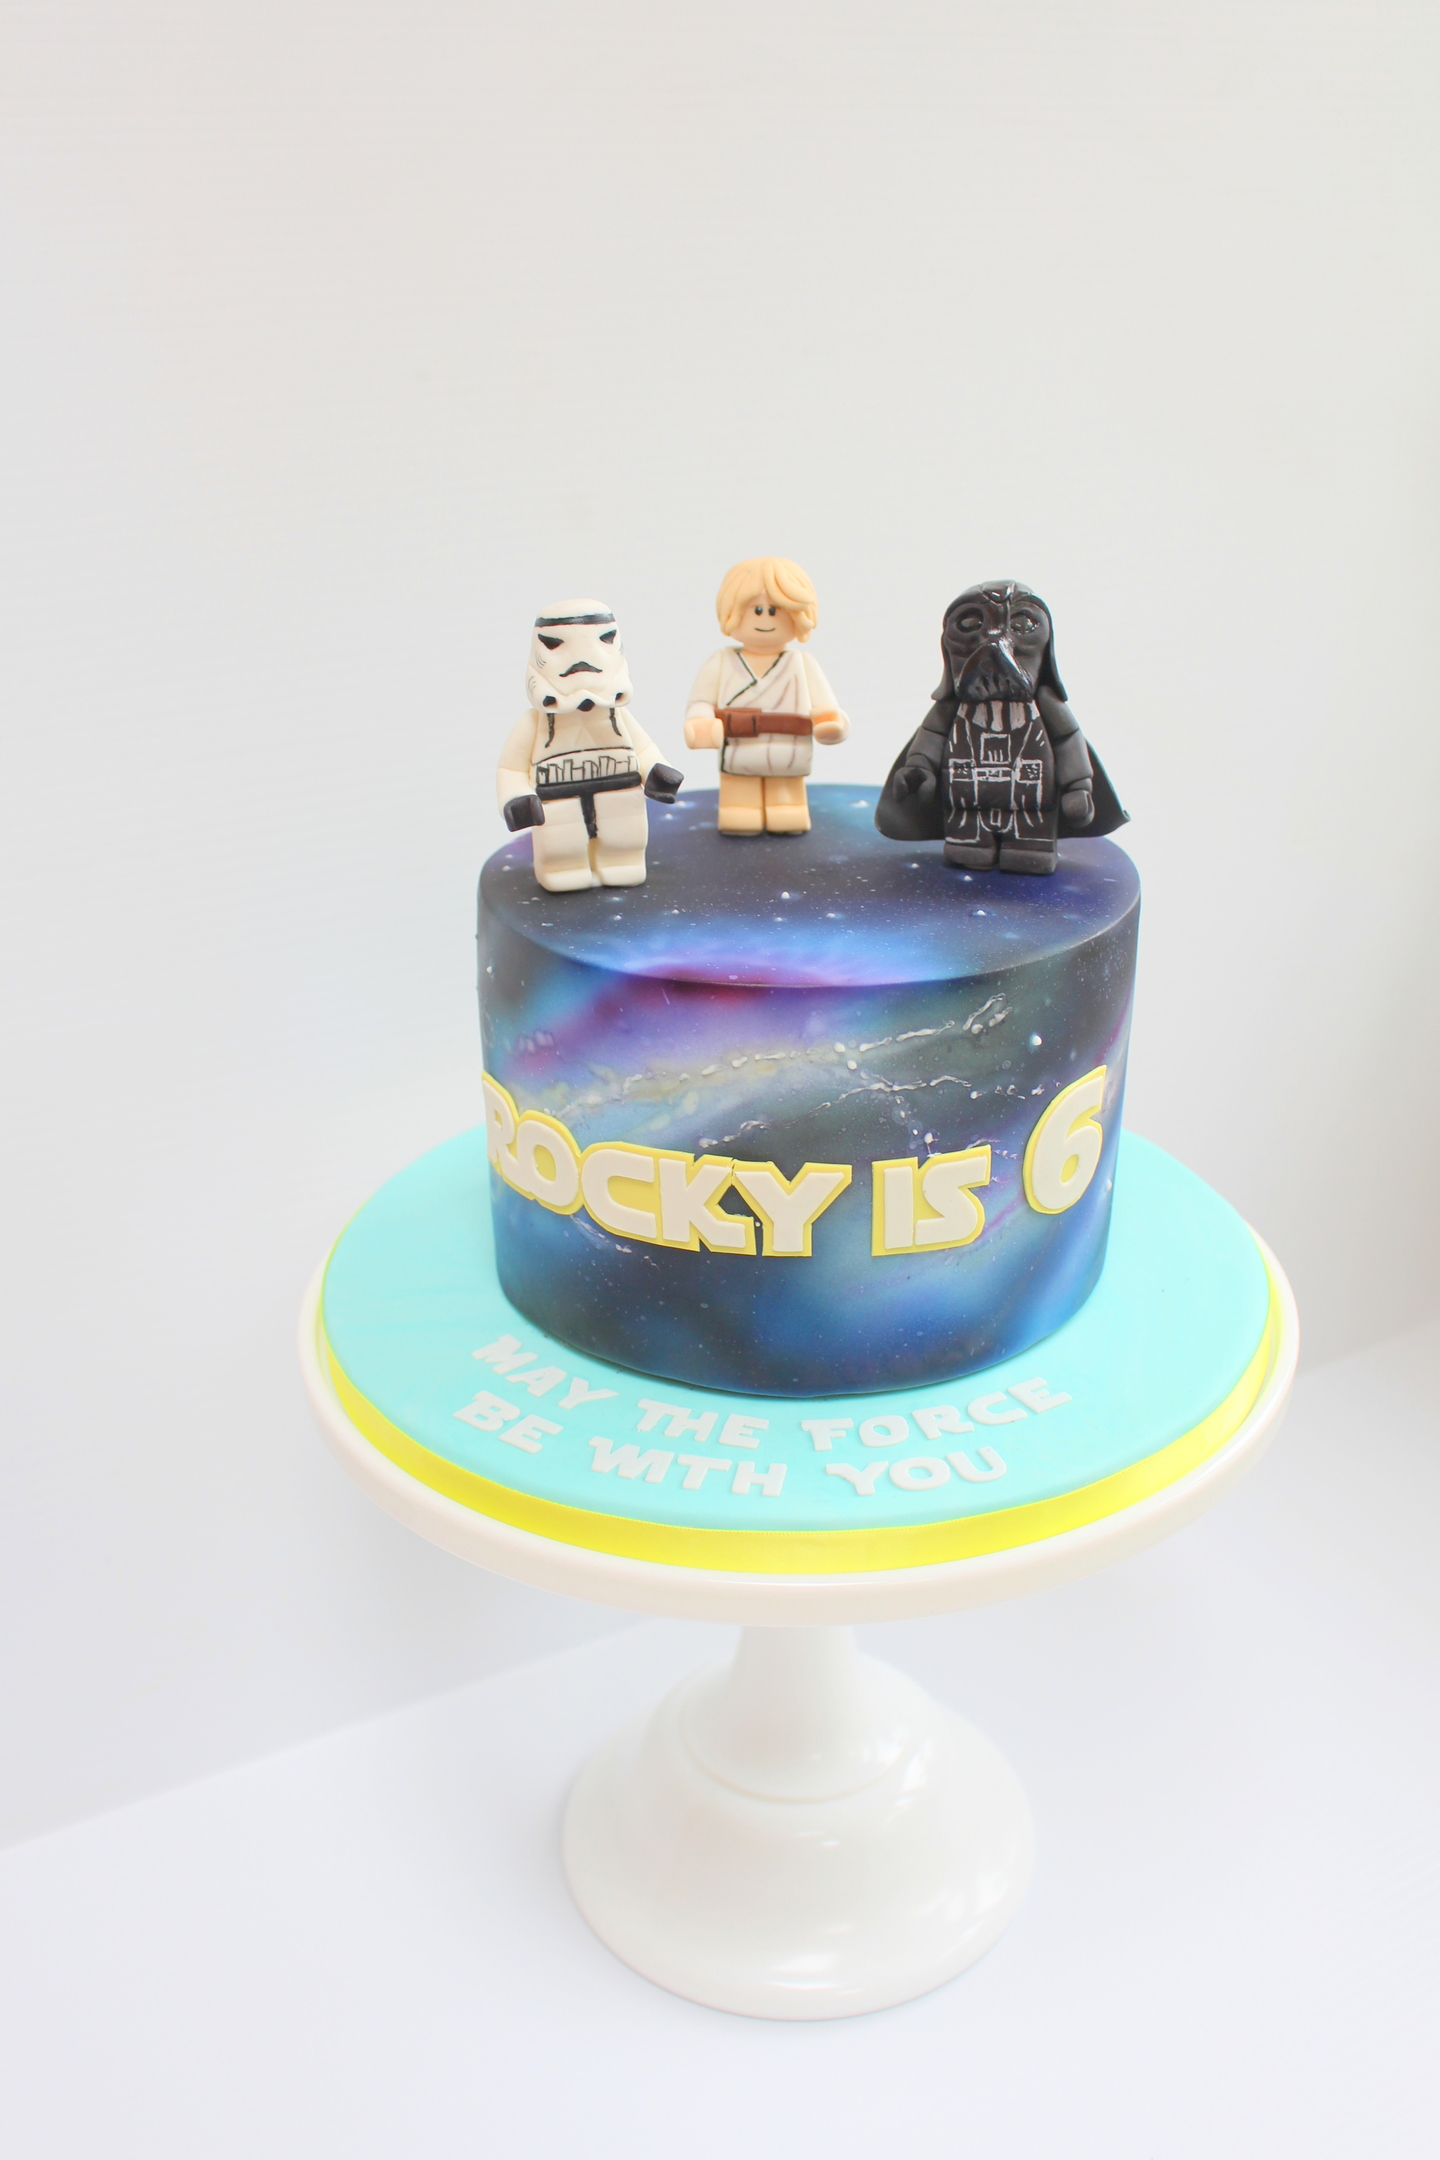 Splendor Cakes and more by Ellen Redmond Dublin | Bakers and Cakers